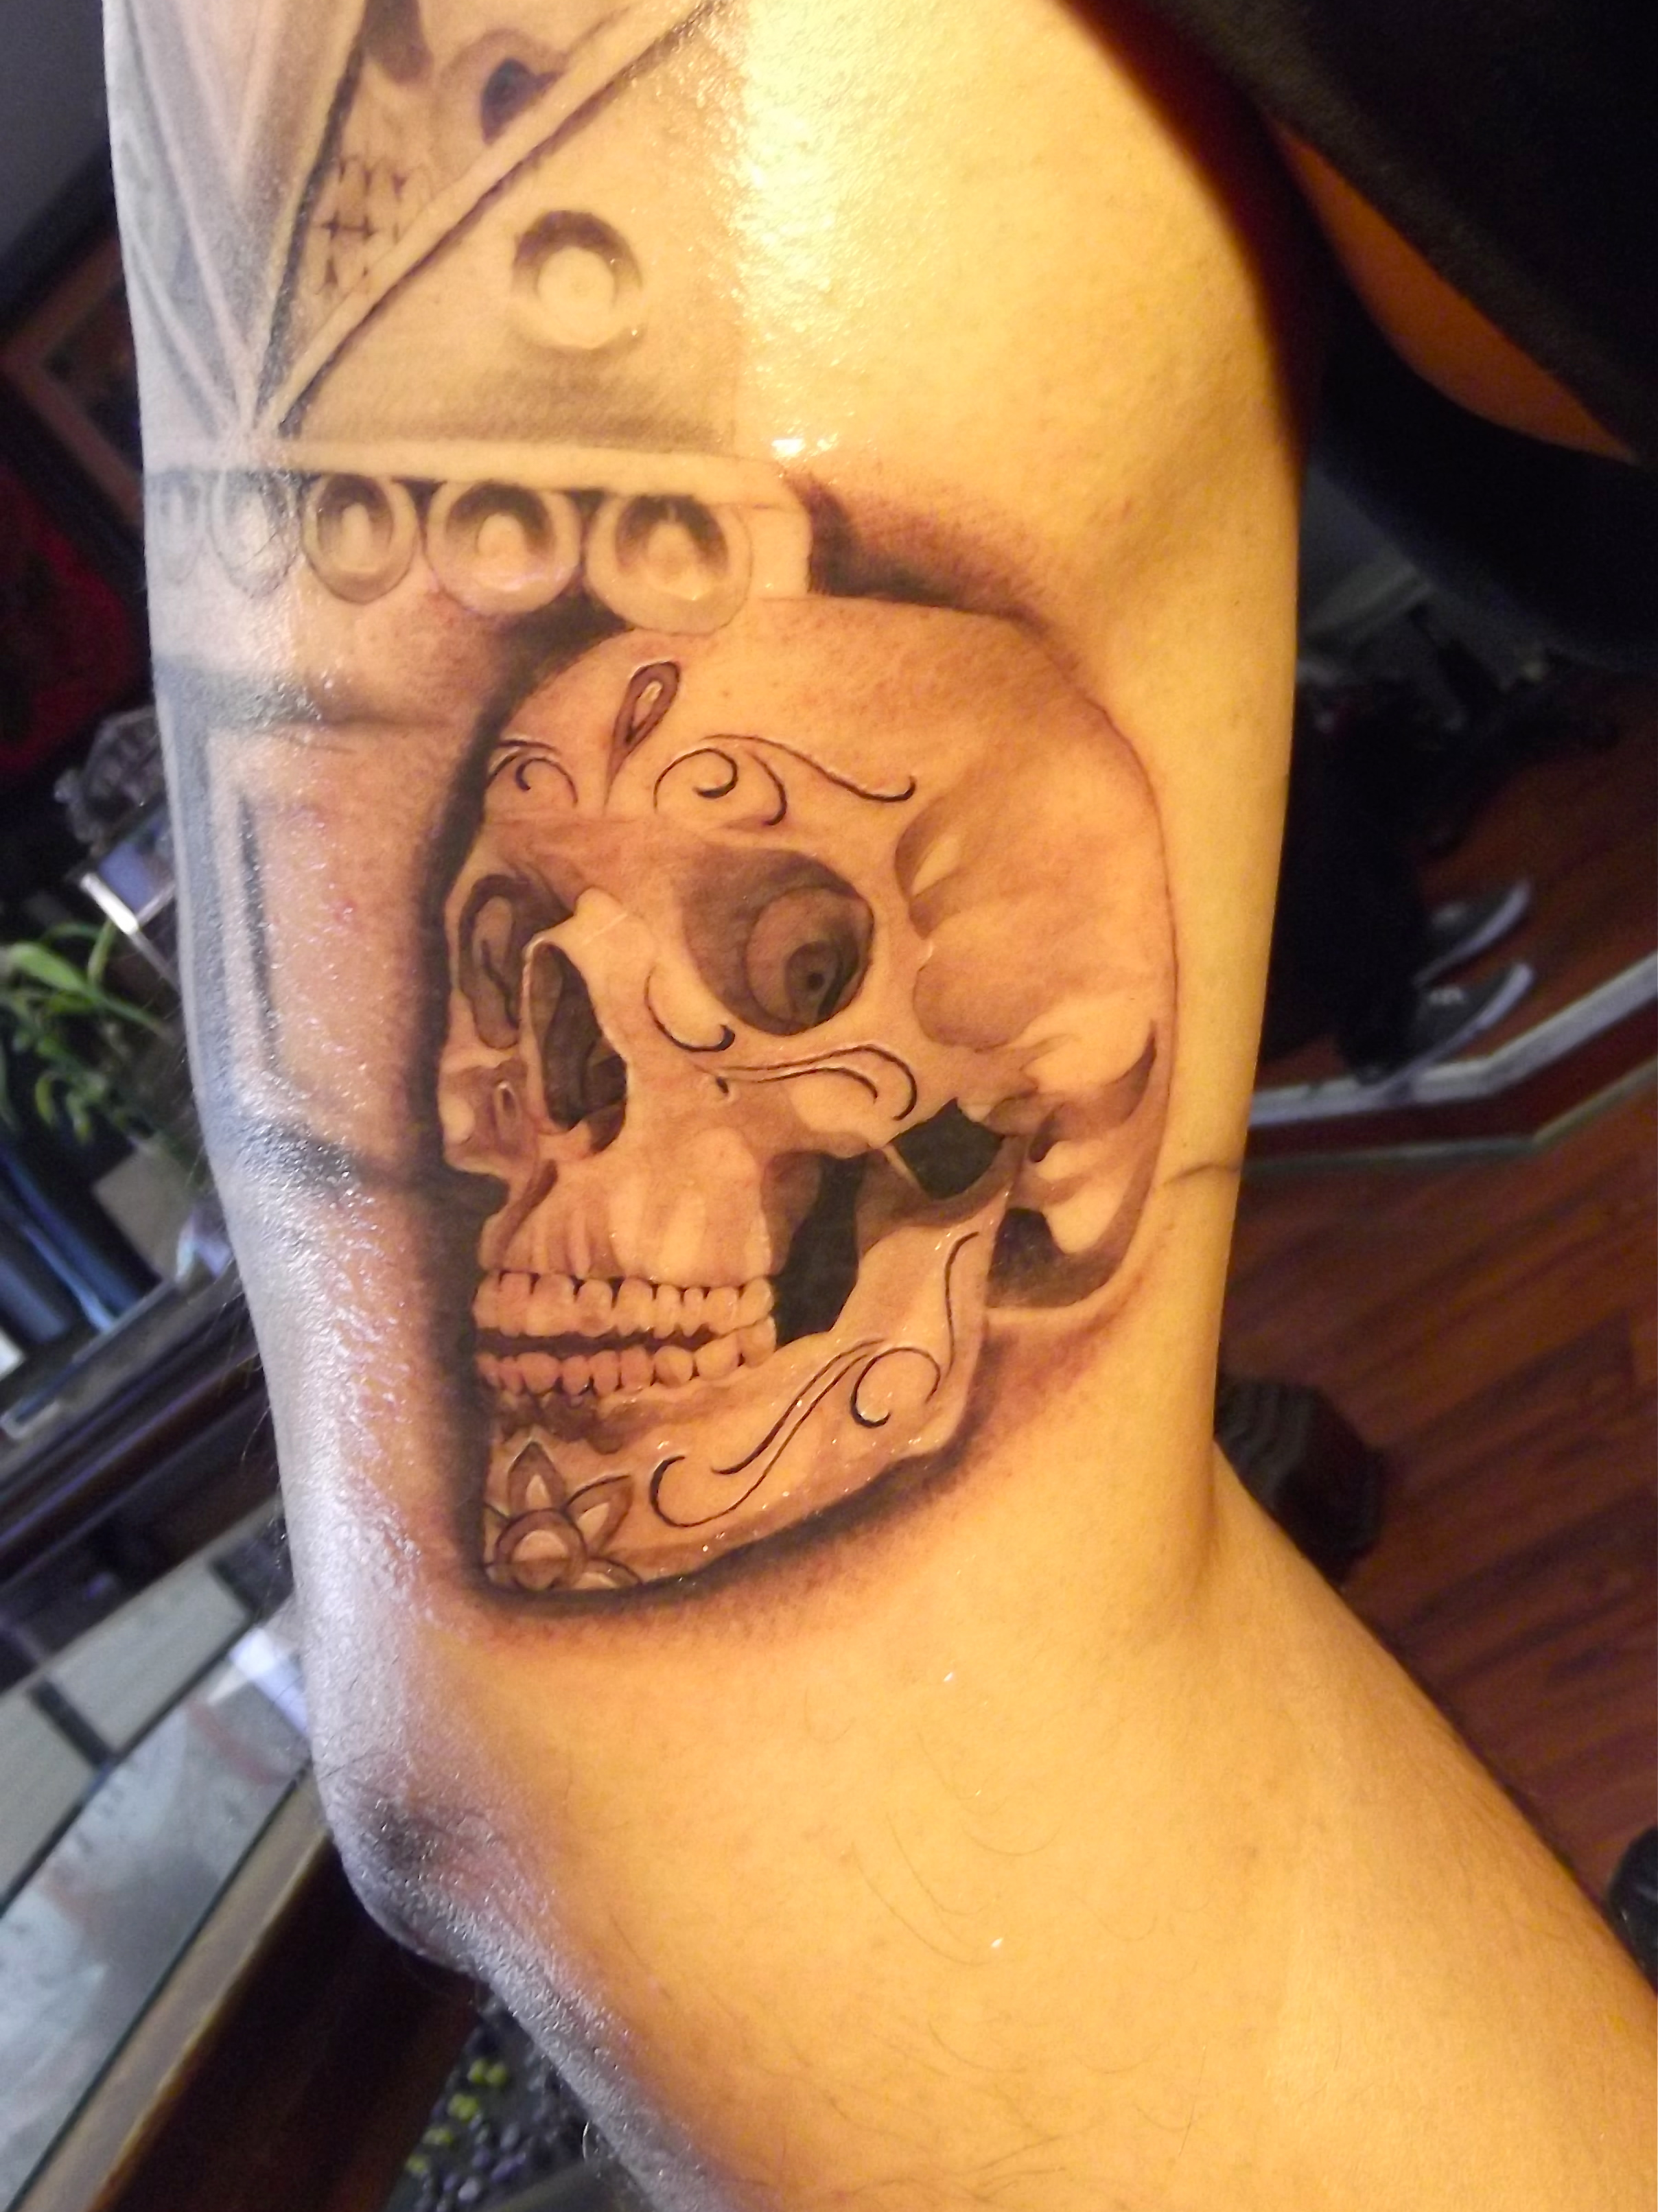 Skull tattoo bryangvargas for Day of the dead skull tattoo